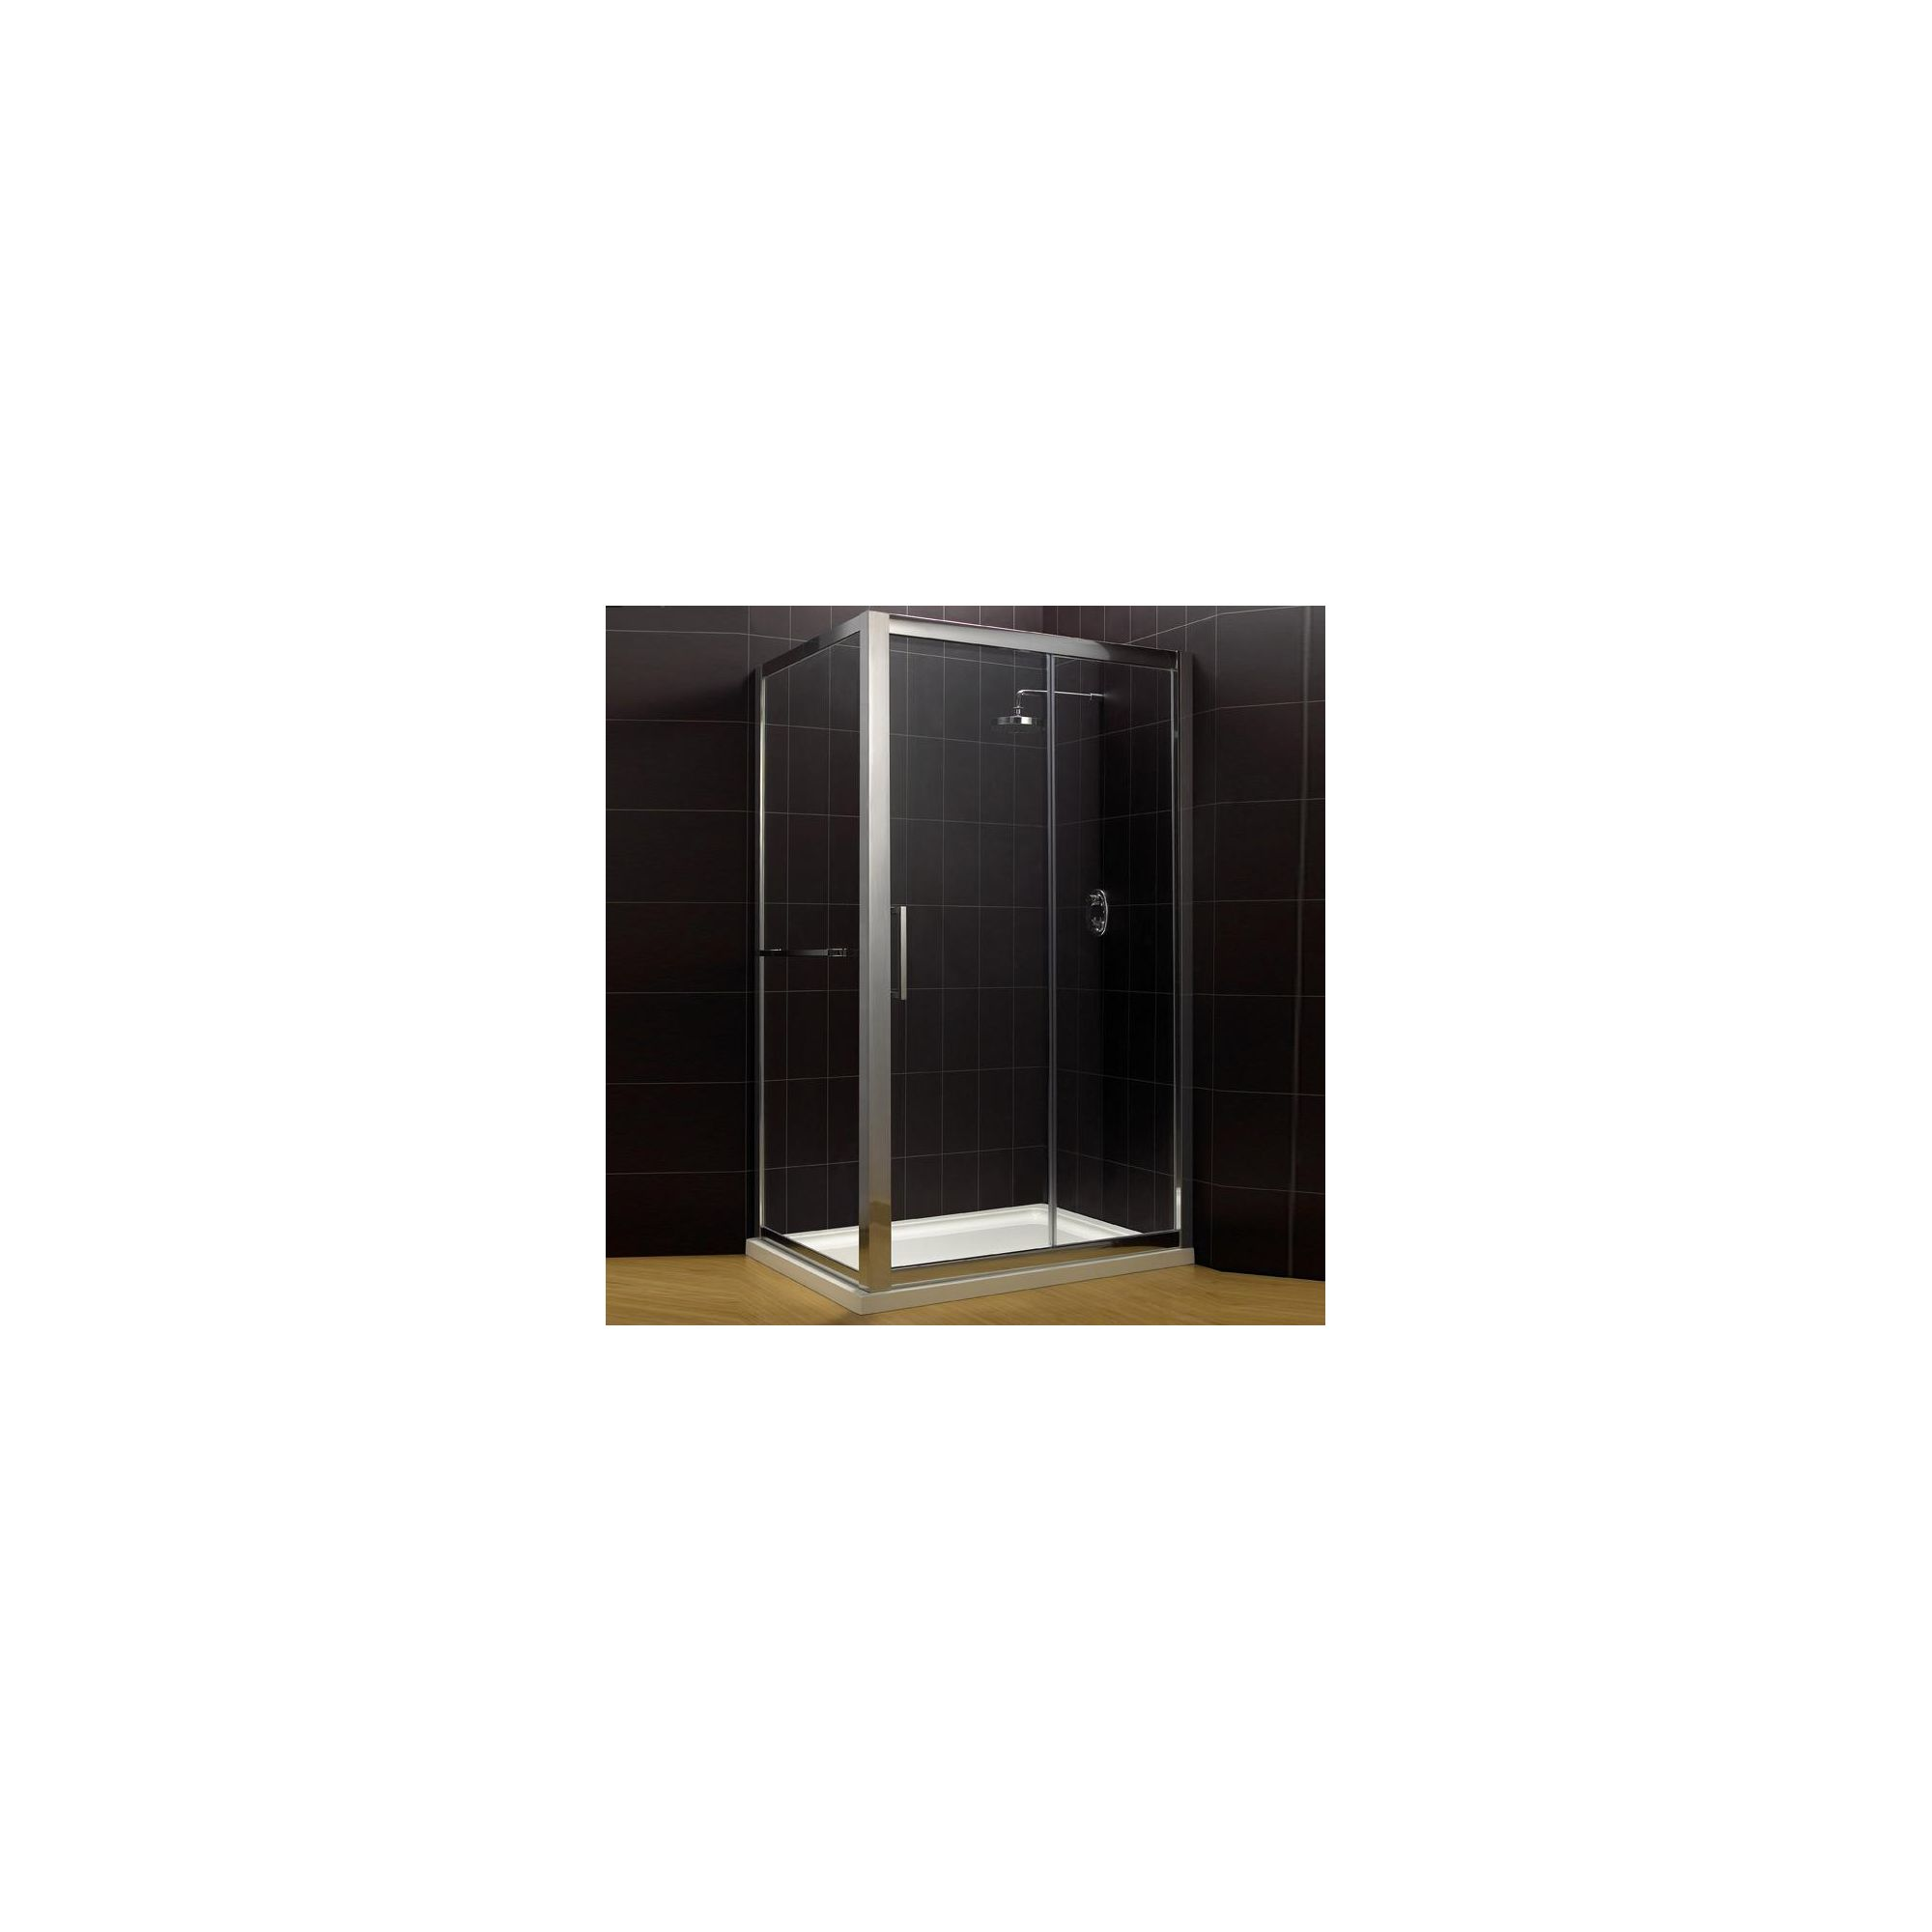 Duchy Supreme Silver Sliding Door Shower Enclosure, 1000mm x 760mm, Standard Tray, 8mm Glass at Tesco Direct